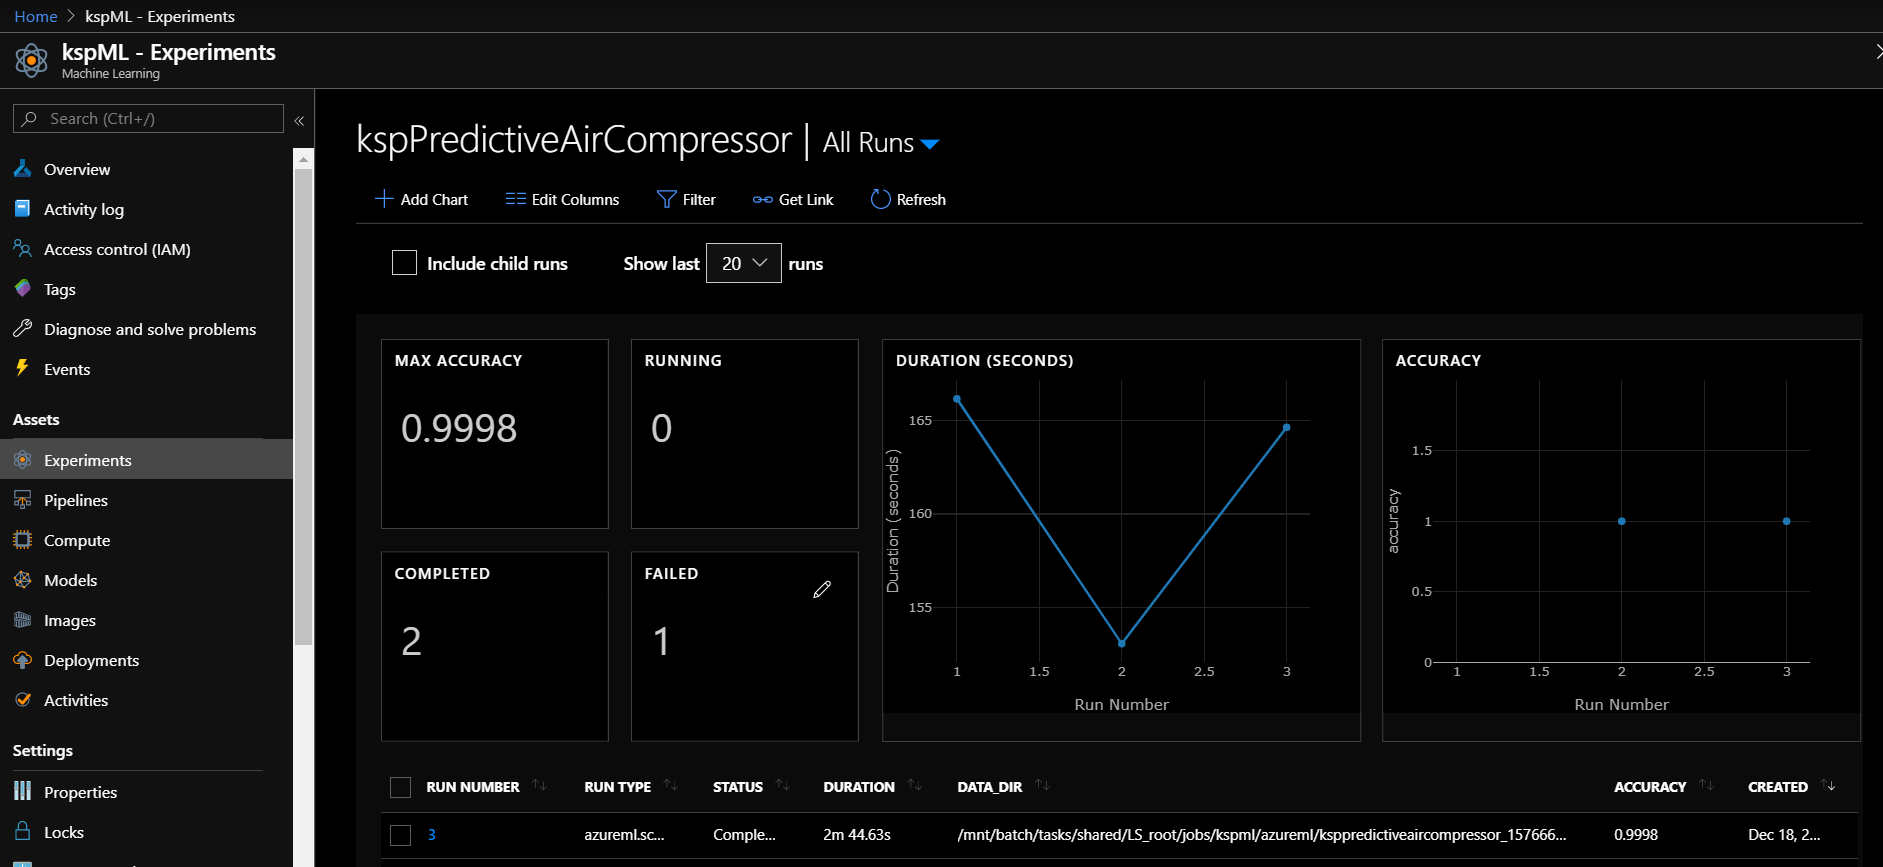 mlservice1 - Predictive Maintenance of Air Compressors using Azure ML Services